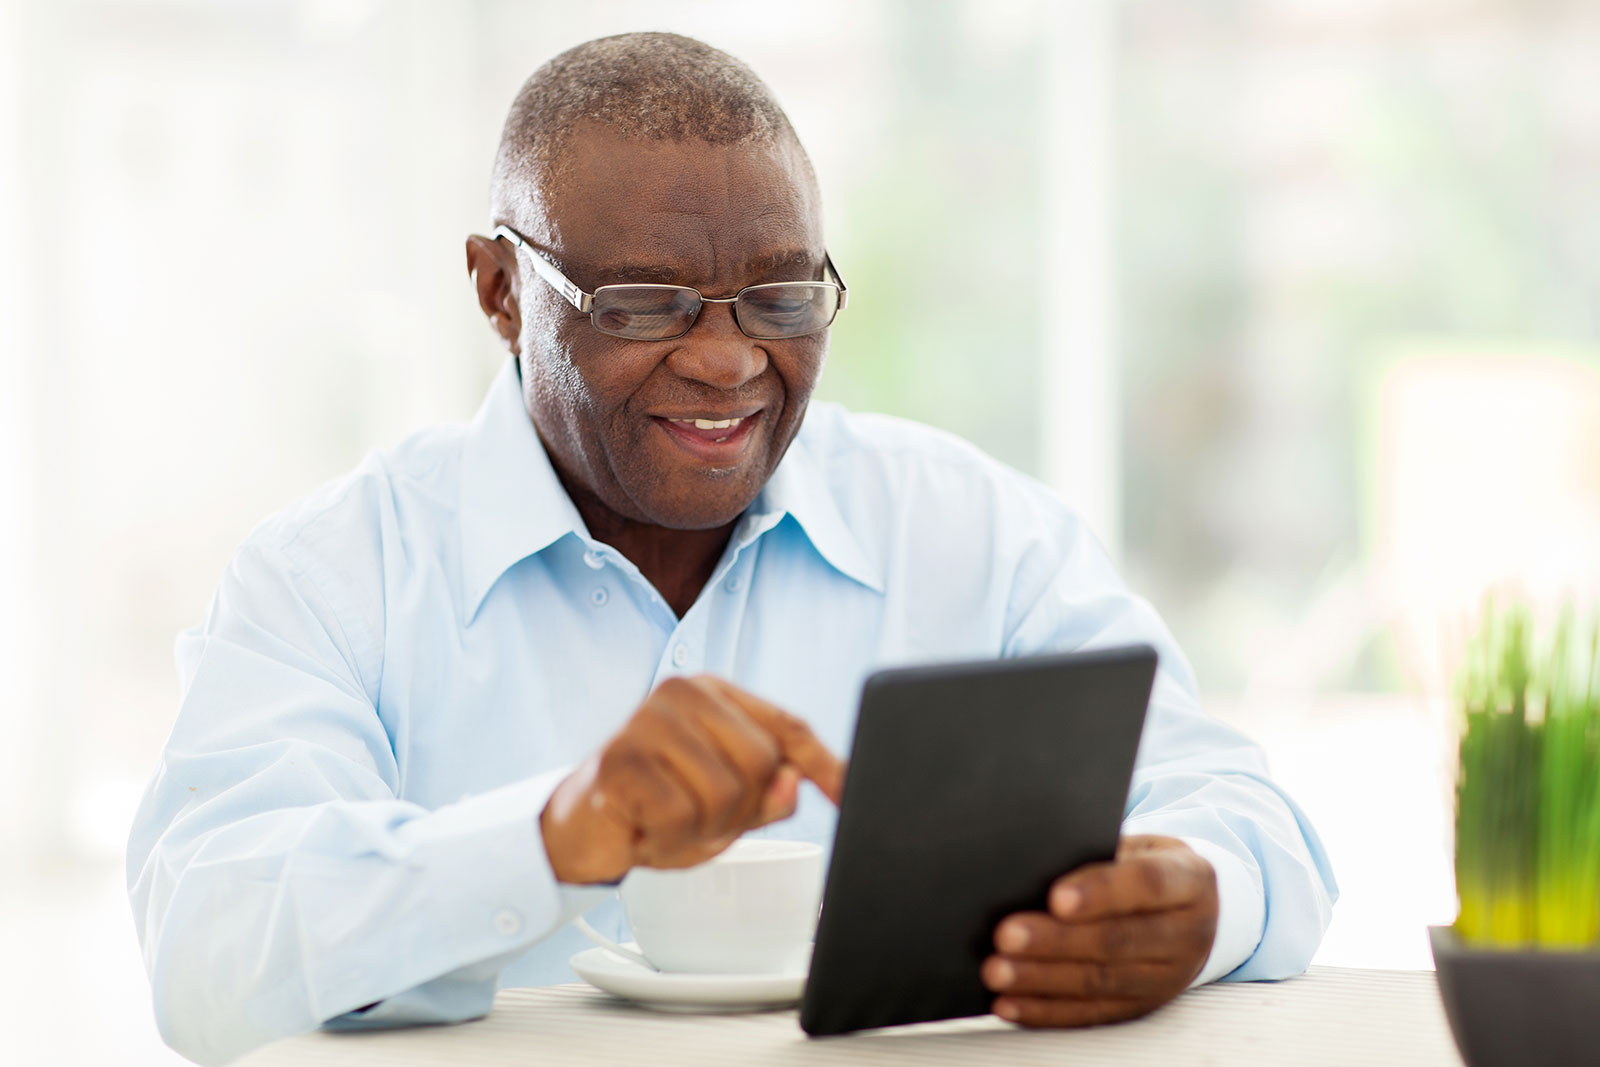 stock-photo-cheerful-senior-african-american-man-using-tablet-computer-at-home-151335656